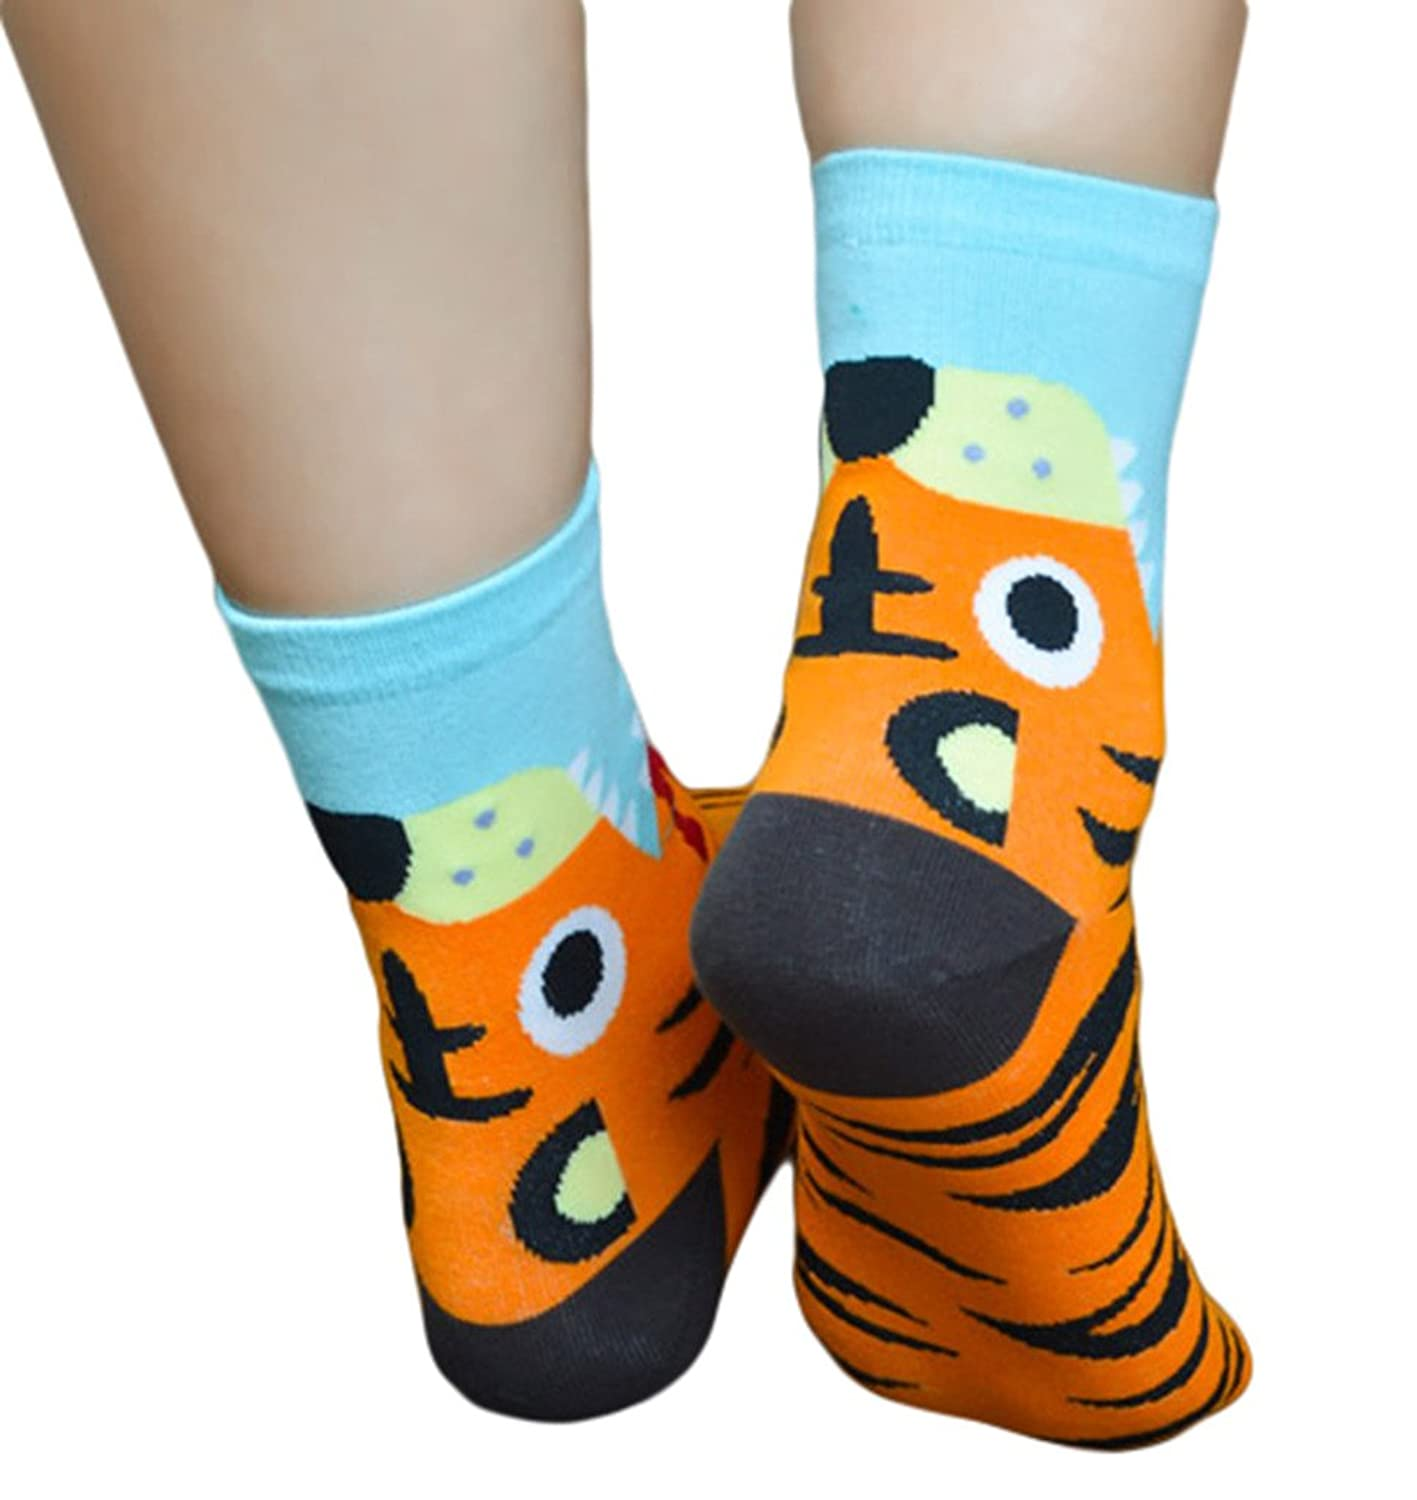 Woo2u Women Cartoon Animal Soft Cotton Korean Ankle Socks